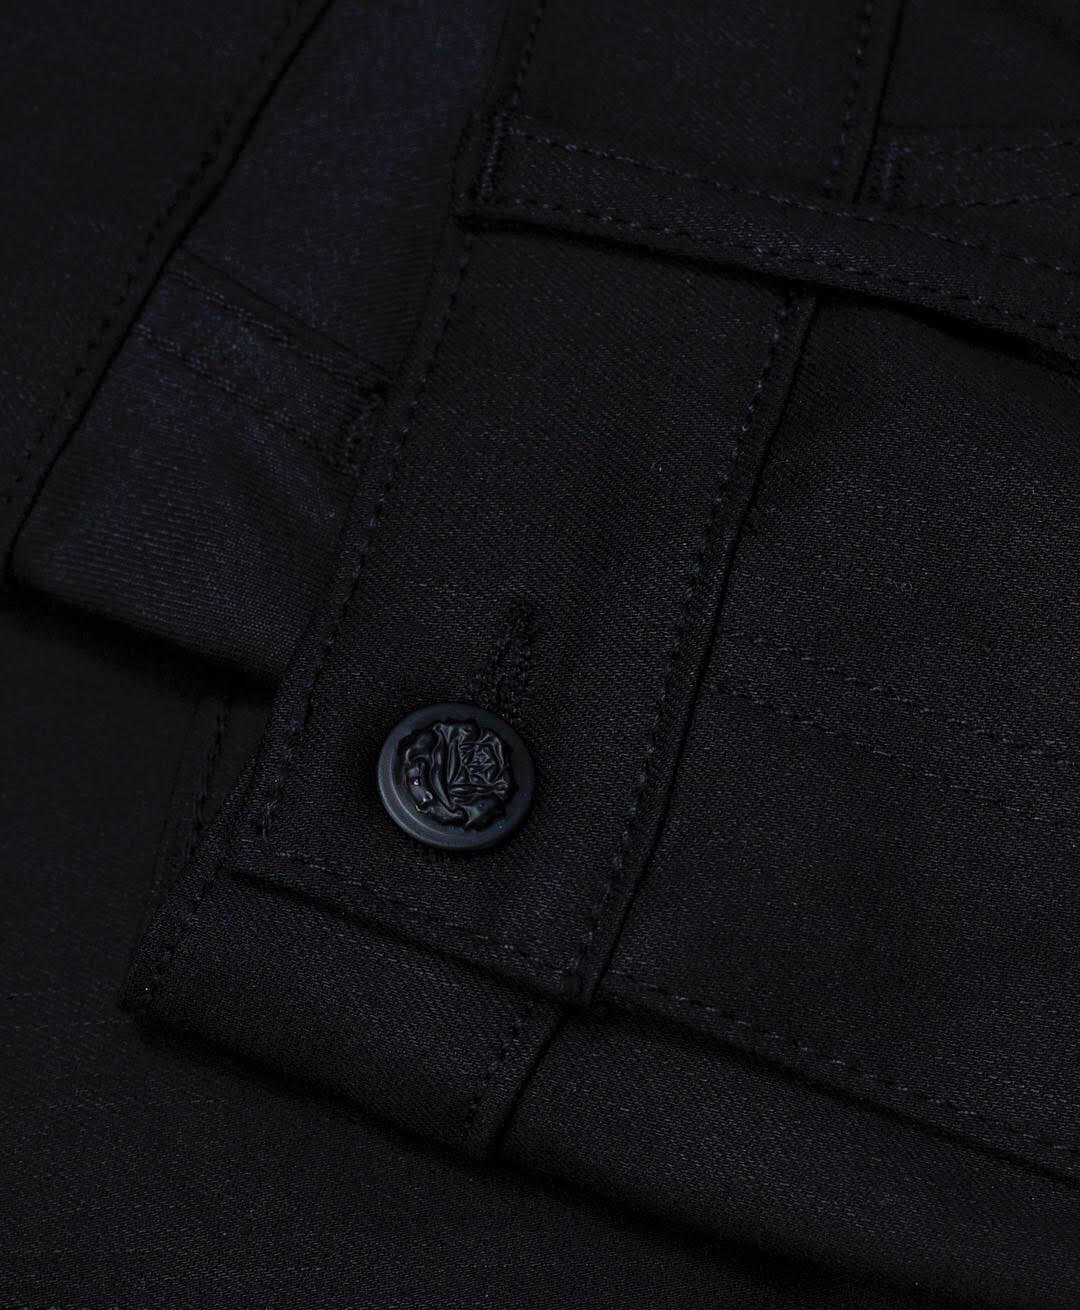 G+R Double Dyed Black TechStrech Raw Denim